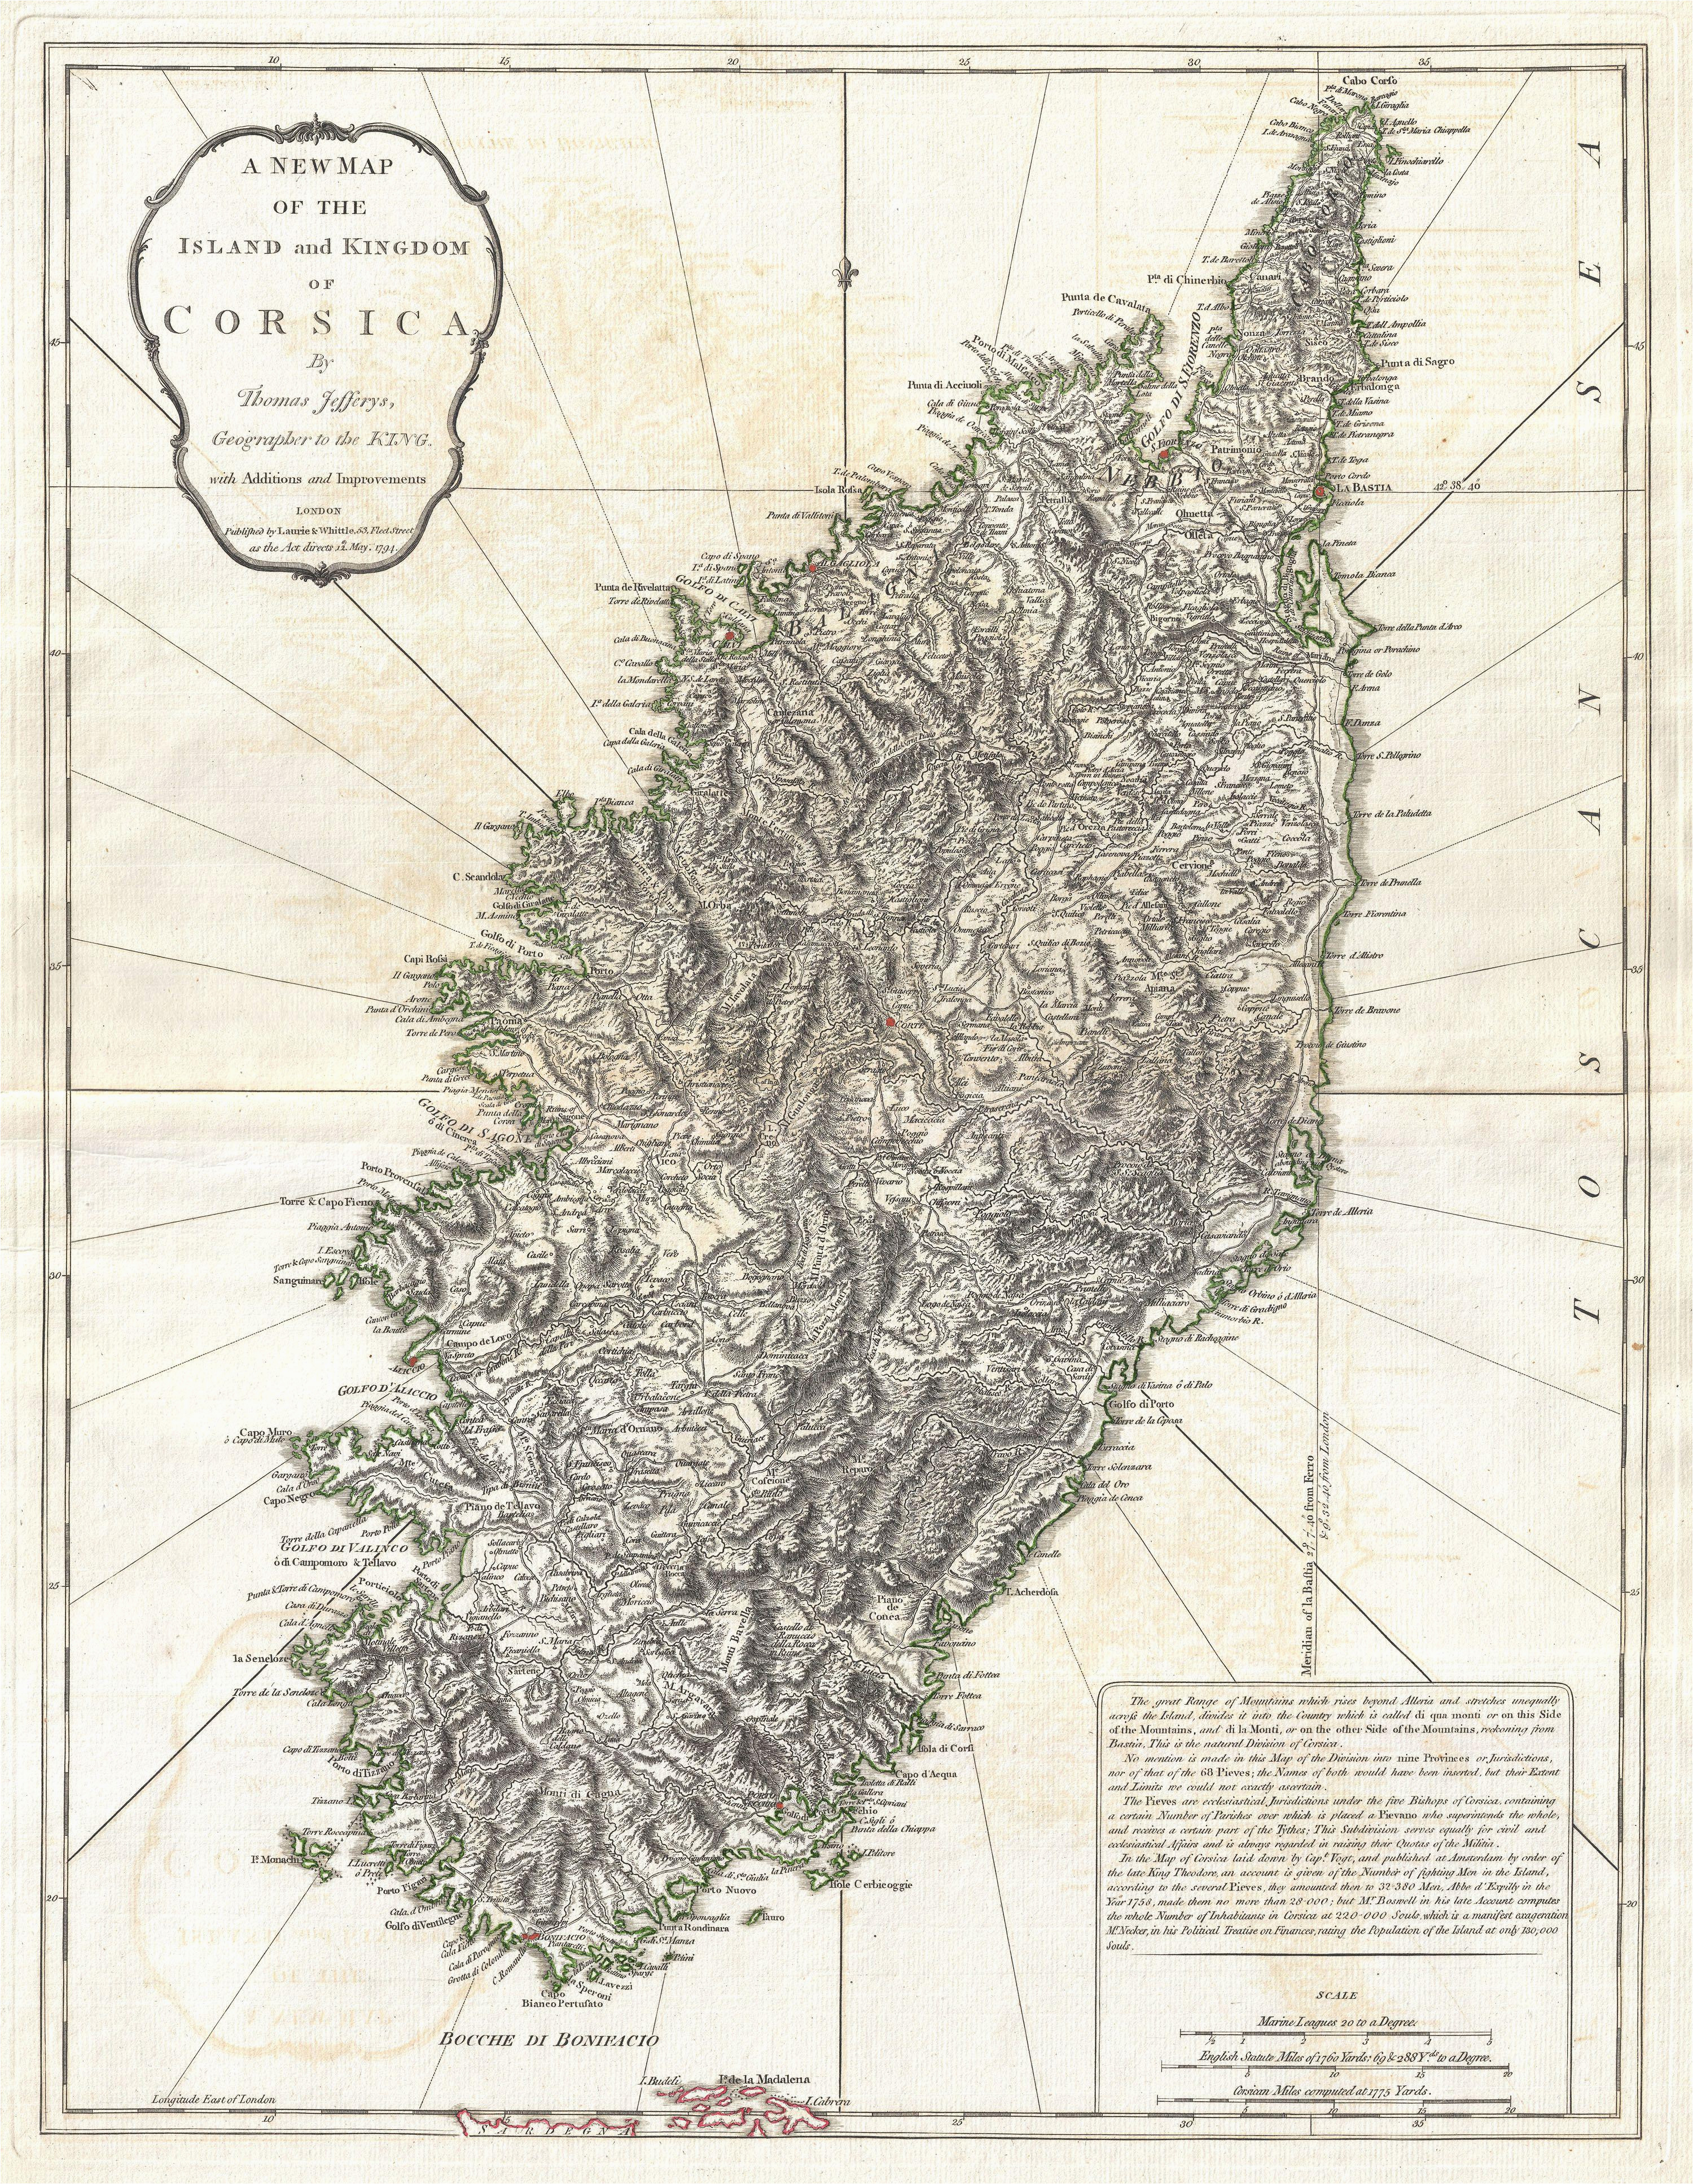 Map Of Corsica France File 1794 Jeffreys Map Of Corsica France Geographicus